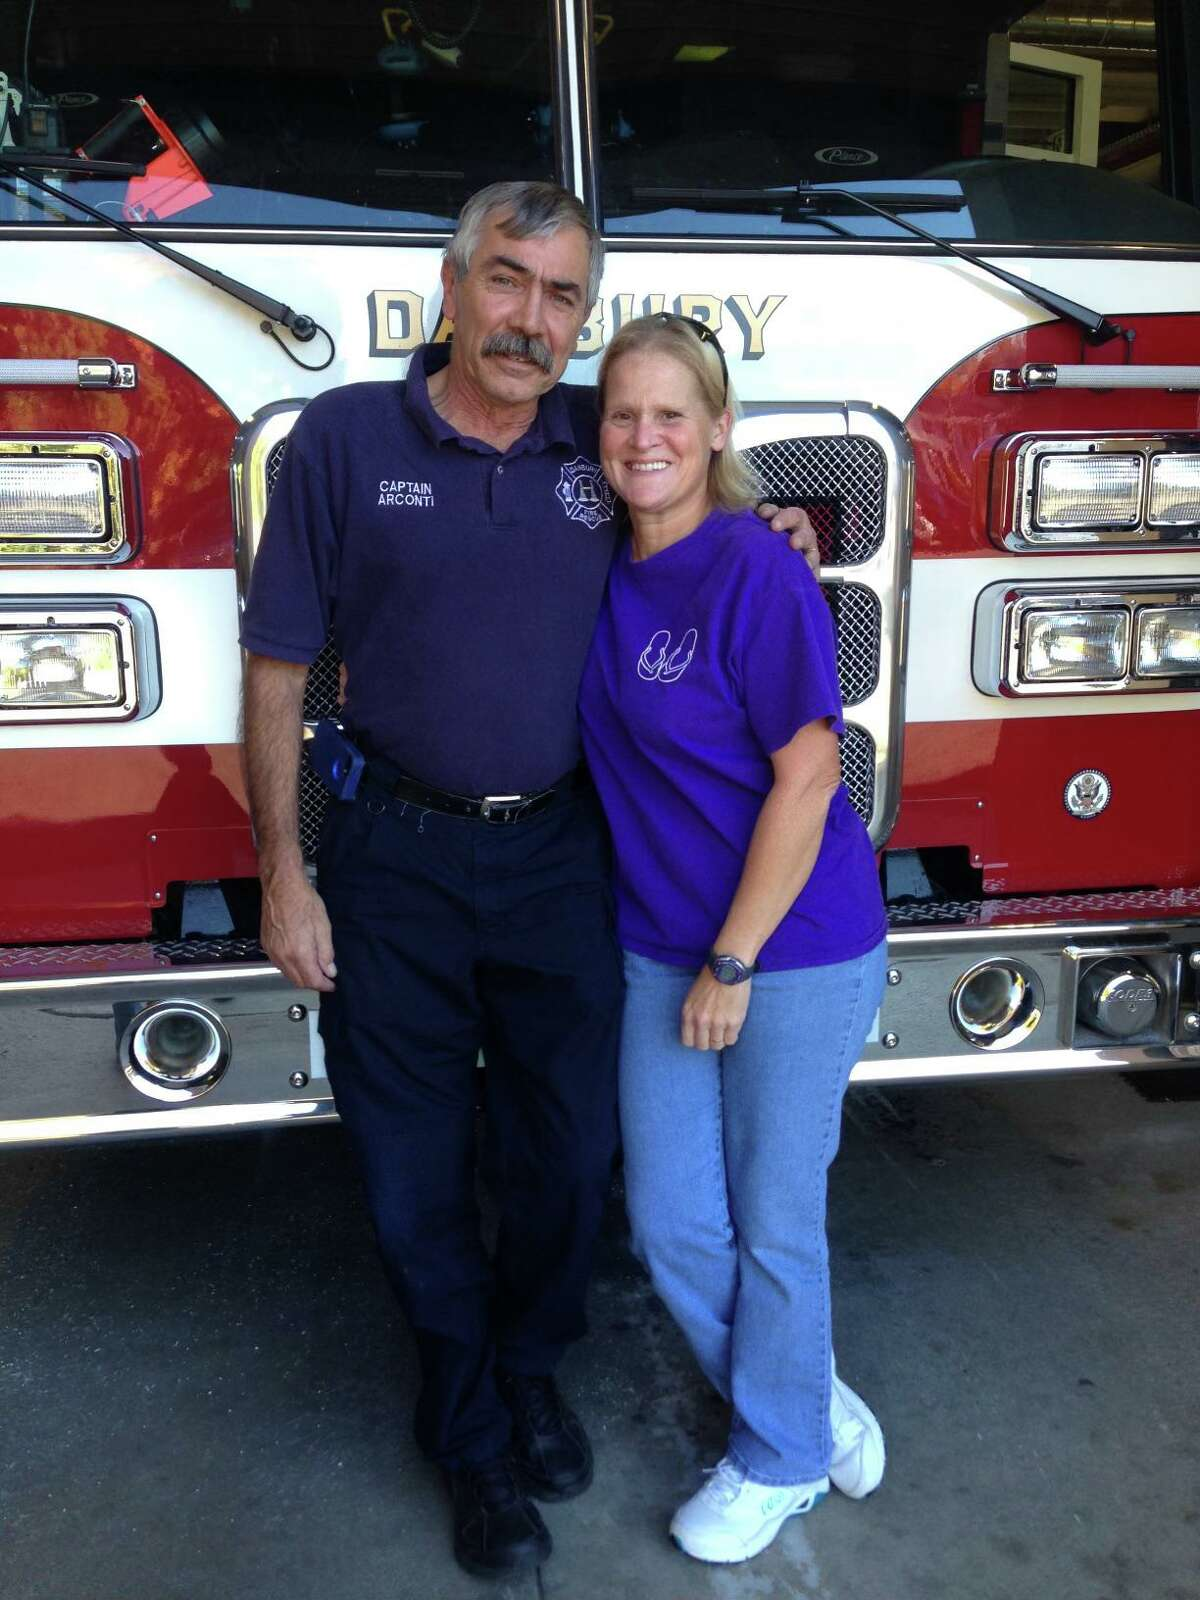 Former Danbury Fire Capt. Gary Arconti with his wife, Lori Arconti, a retired fire lieutenant. Gary Arconti died on Aug. 8 at 67.